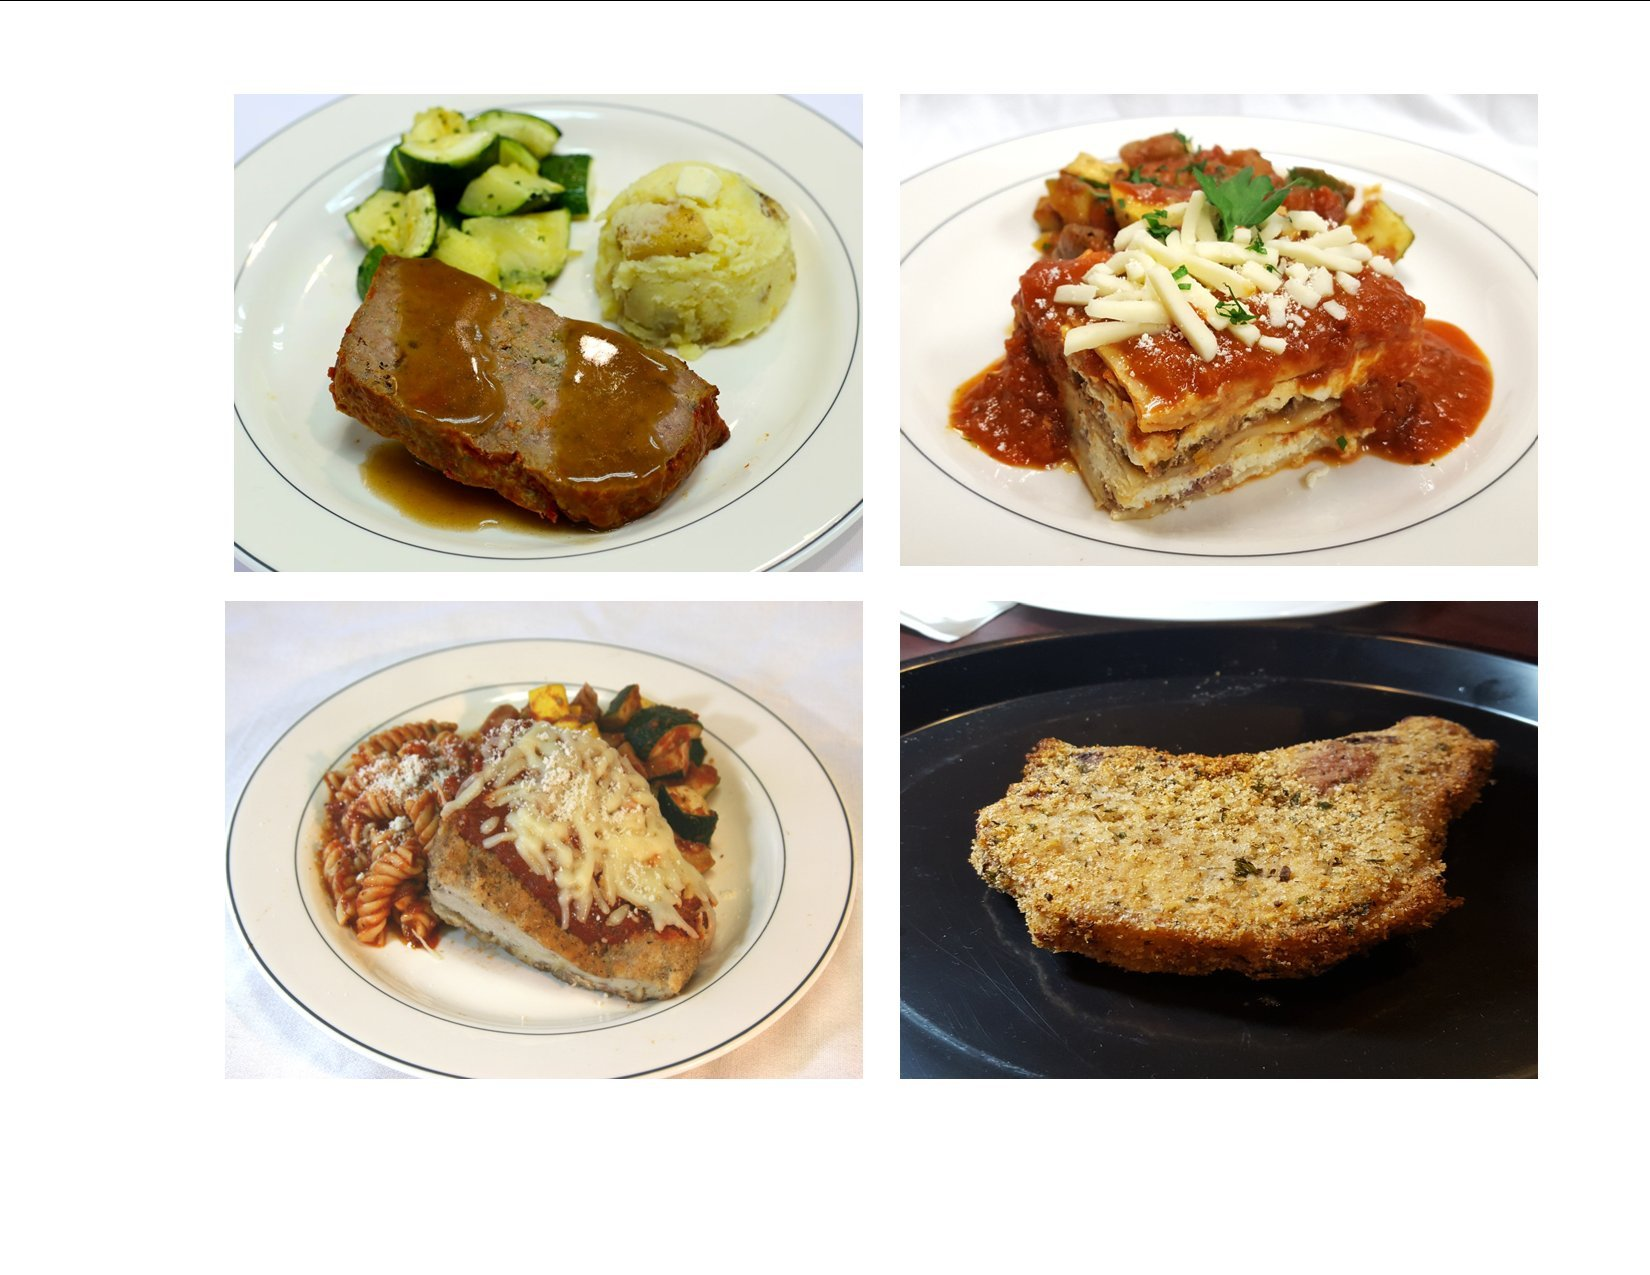 Healthy Chef Prepared Traditional Favorite Meals - 2 each of Chicken Parmesan, American Meatloaf, Baked Pork Chop, and Meat Lasagna